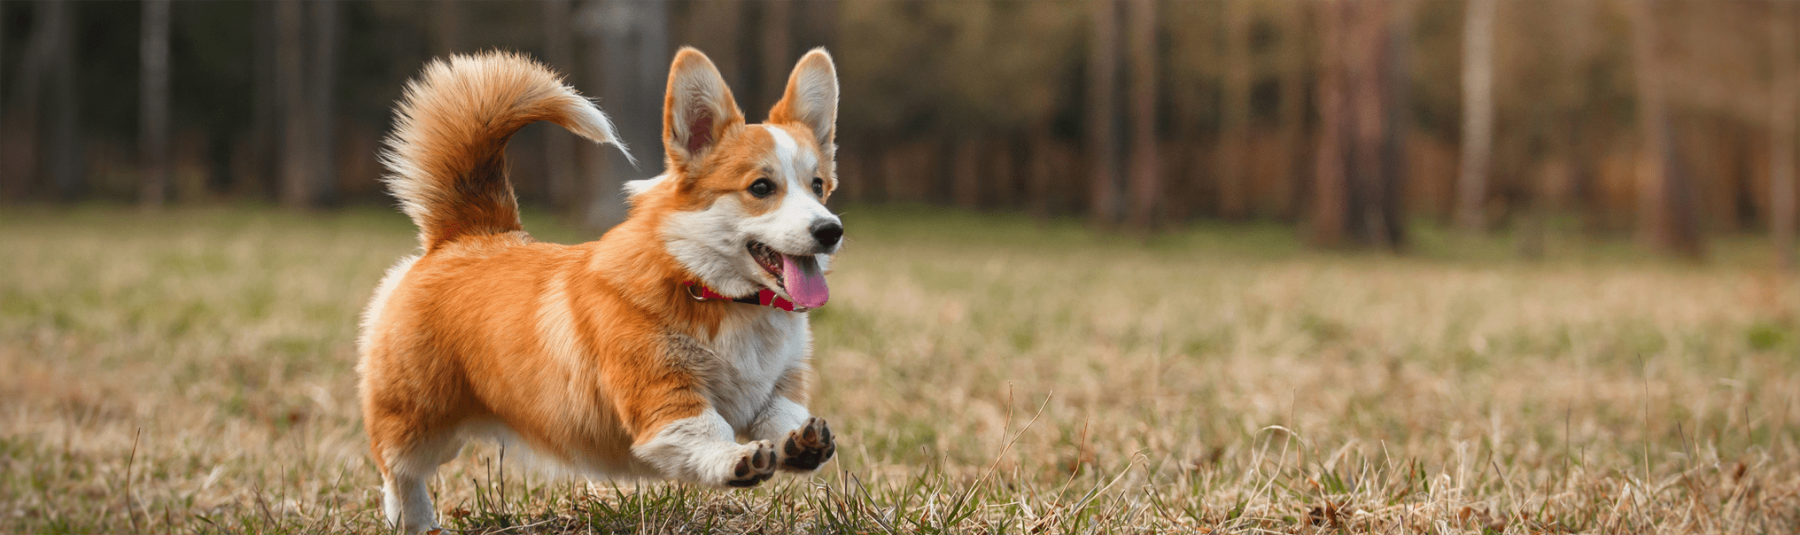 Corgi running in grass